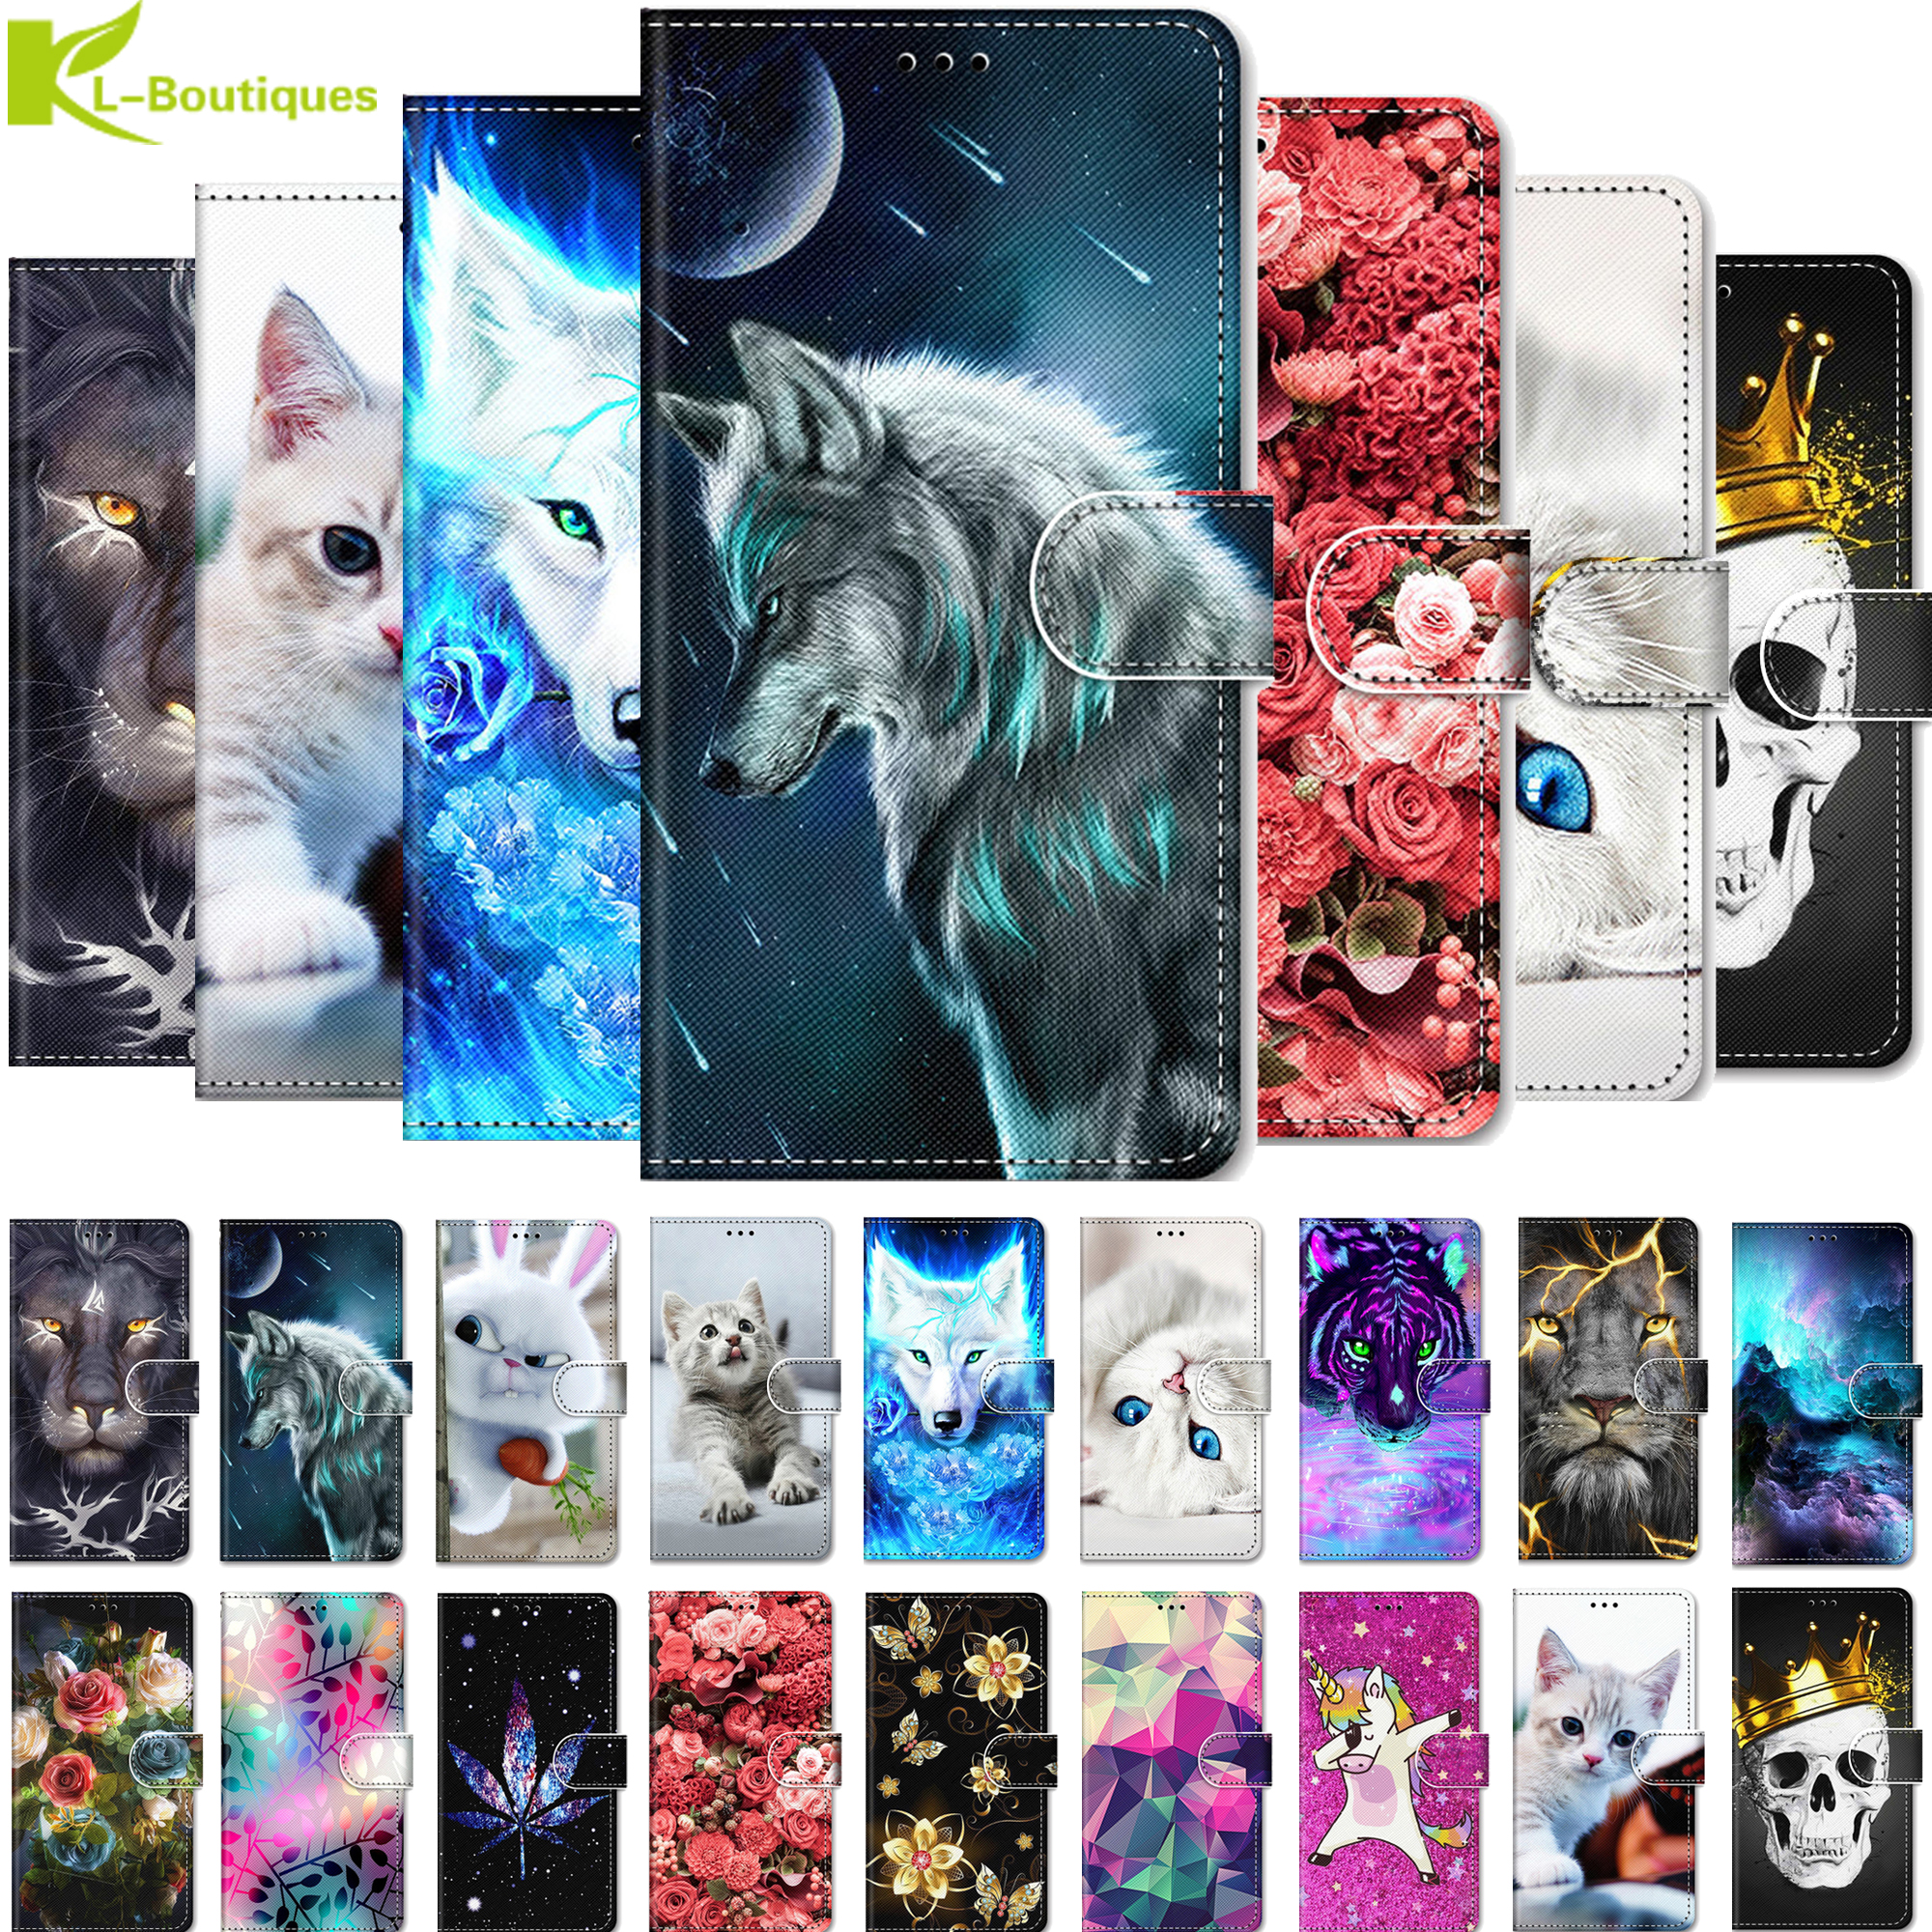 Capa for <font><b>Huawei</b></font> Y7 Y 7 <font><b>2019</b></font> DUB-LX1 <font><b>Case</b></font> On sFor etui <font><b>Huawei</b></font> y72019 Y5 Y5 Lite <font><b>Y6</b></font> Y7 2018 <font><b>2019</b></font> Protect Mobile Phone <font><b>case</b></font> <font><b>covers</b></font> image